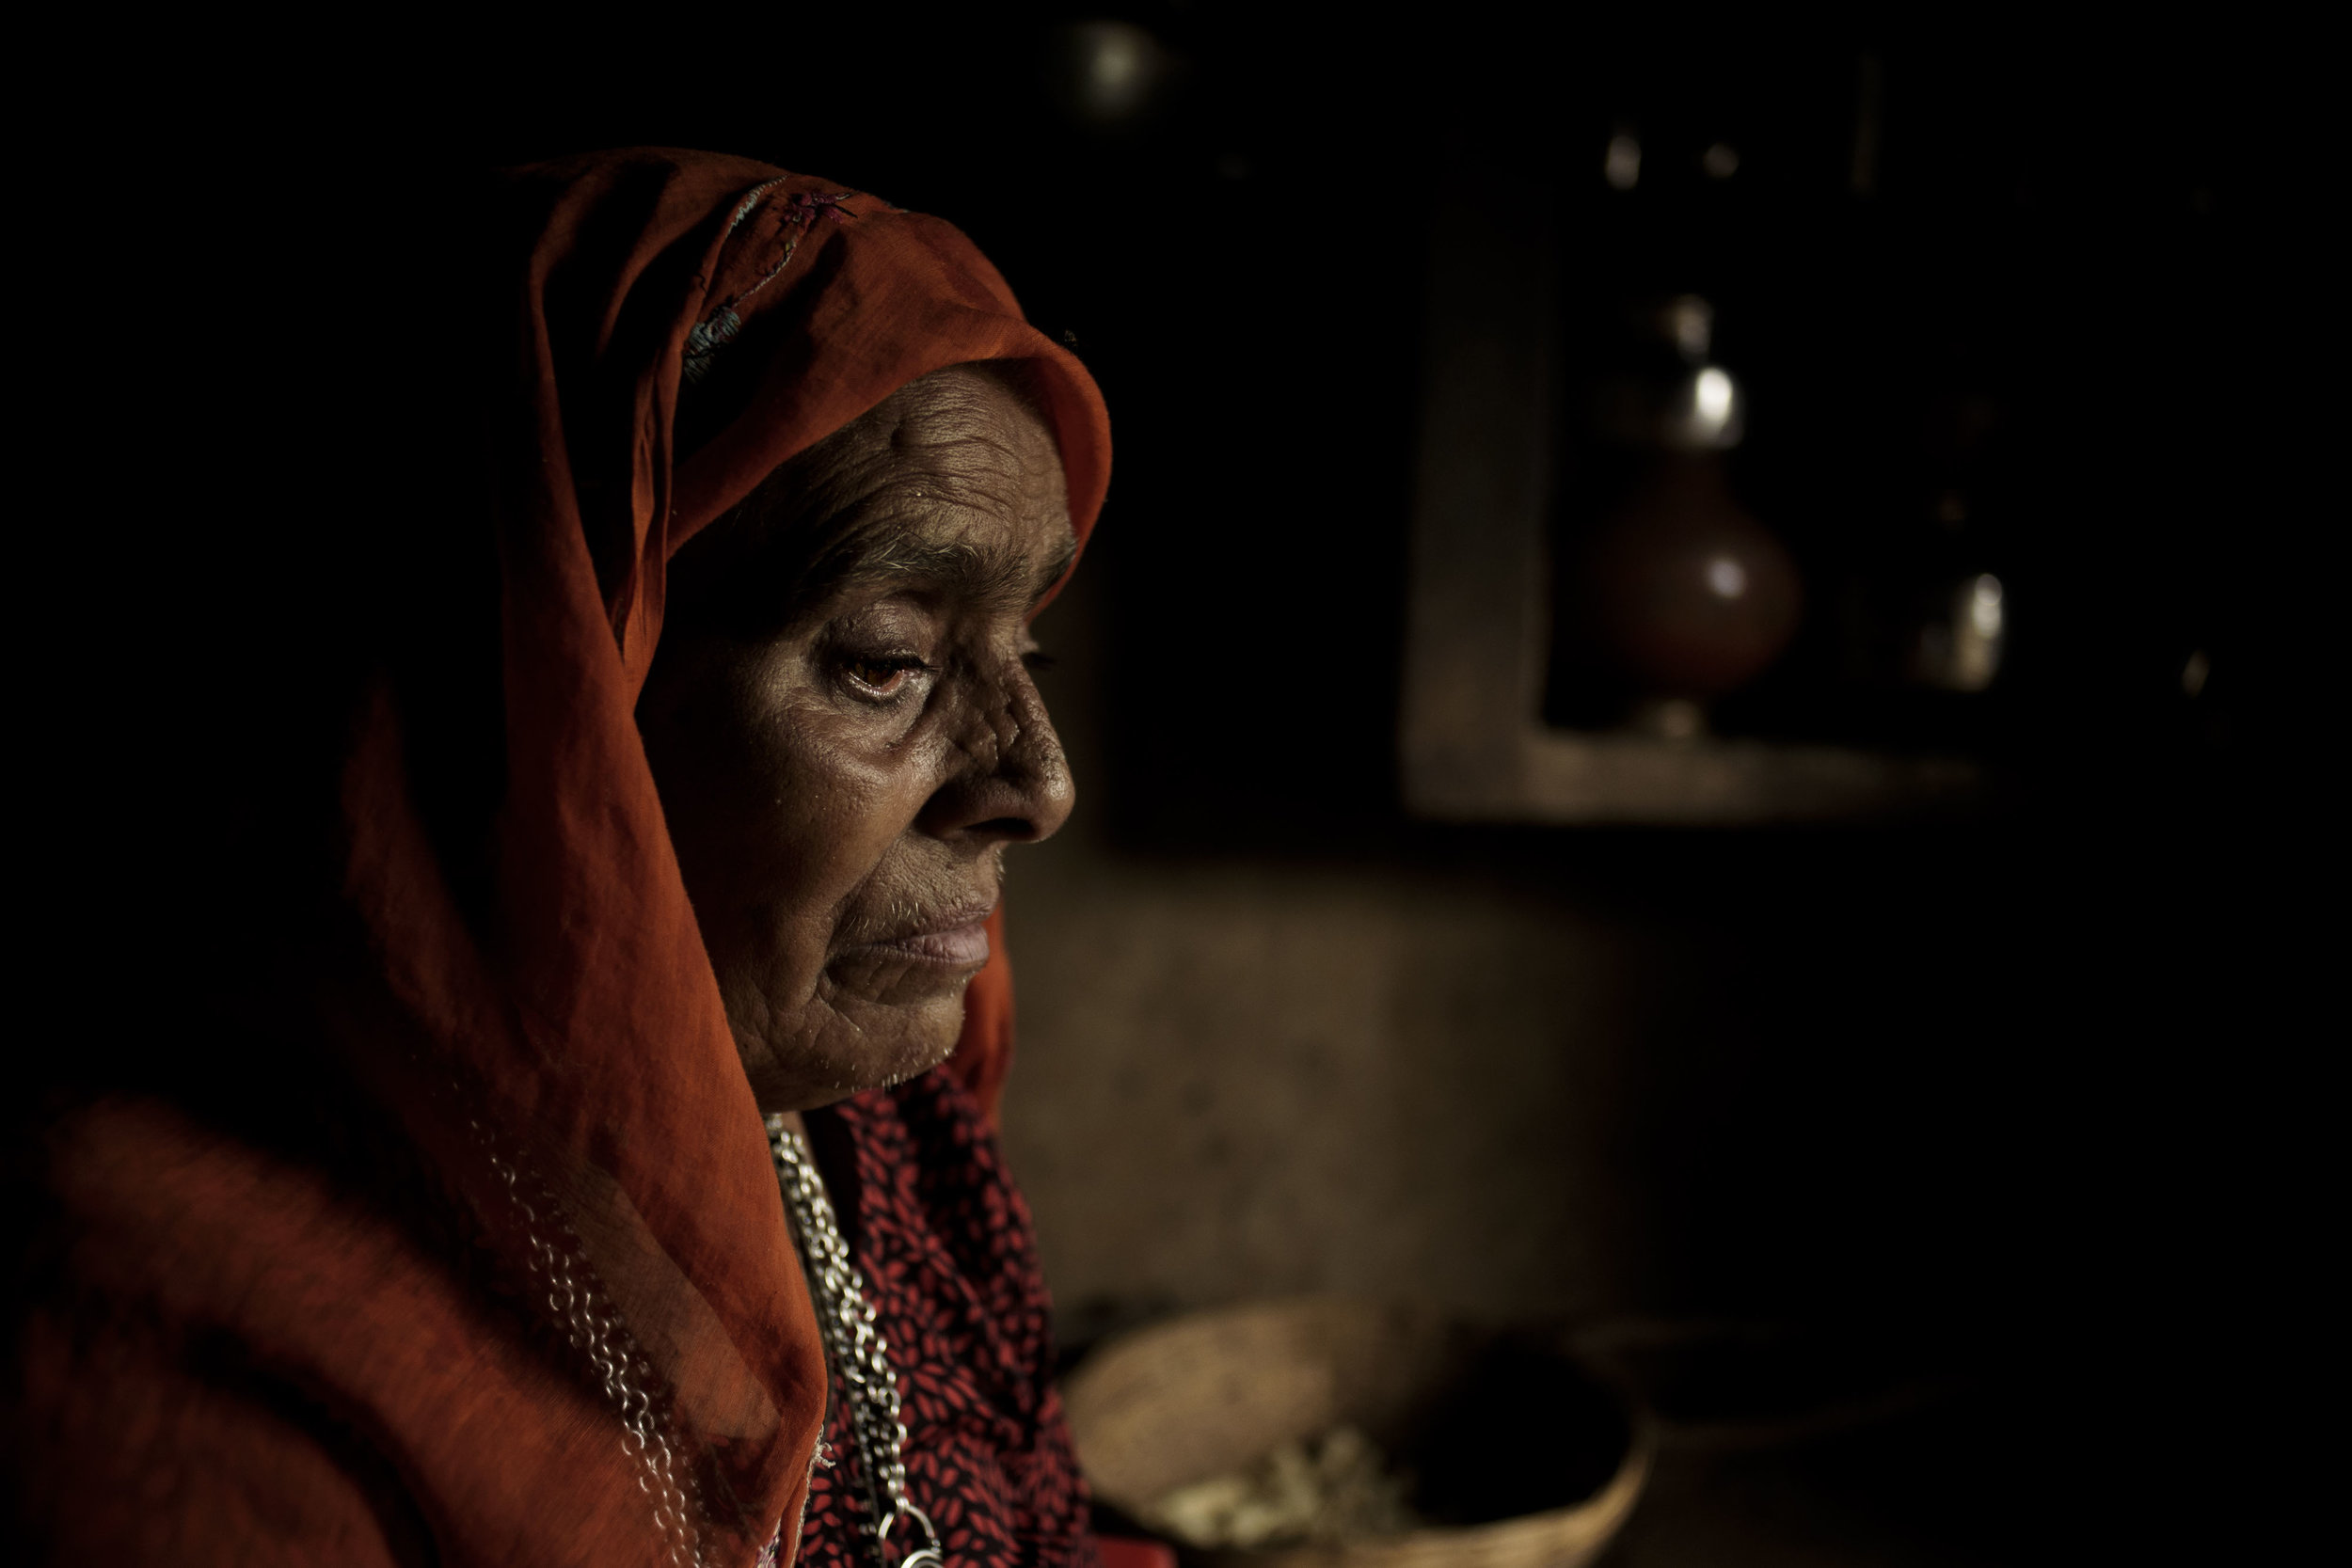 Babli, 50, is Nathu Homa's wife. She is a housewife and also suffers from Hypertension.